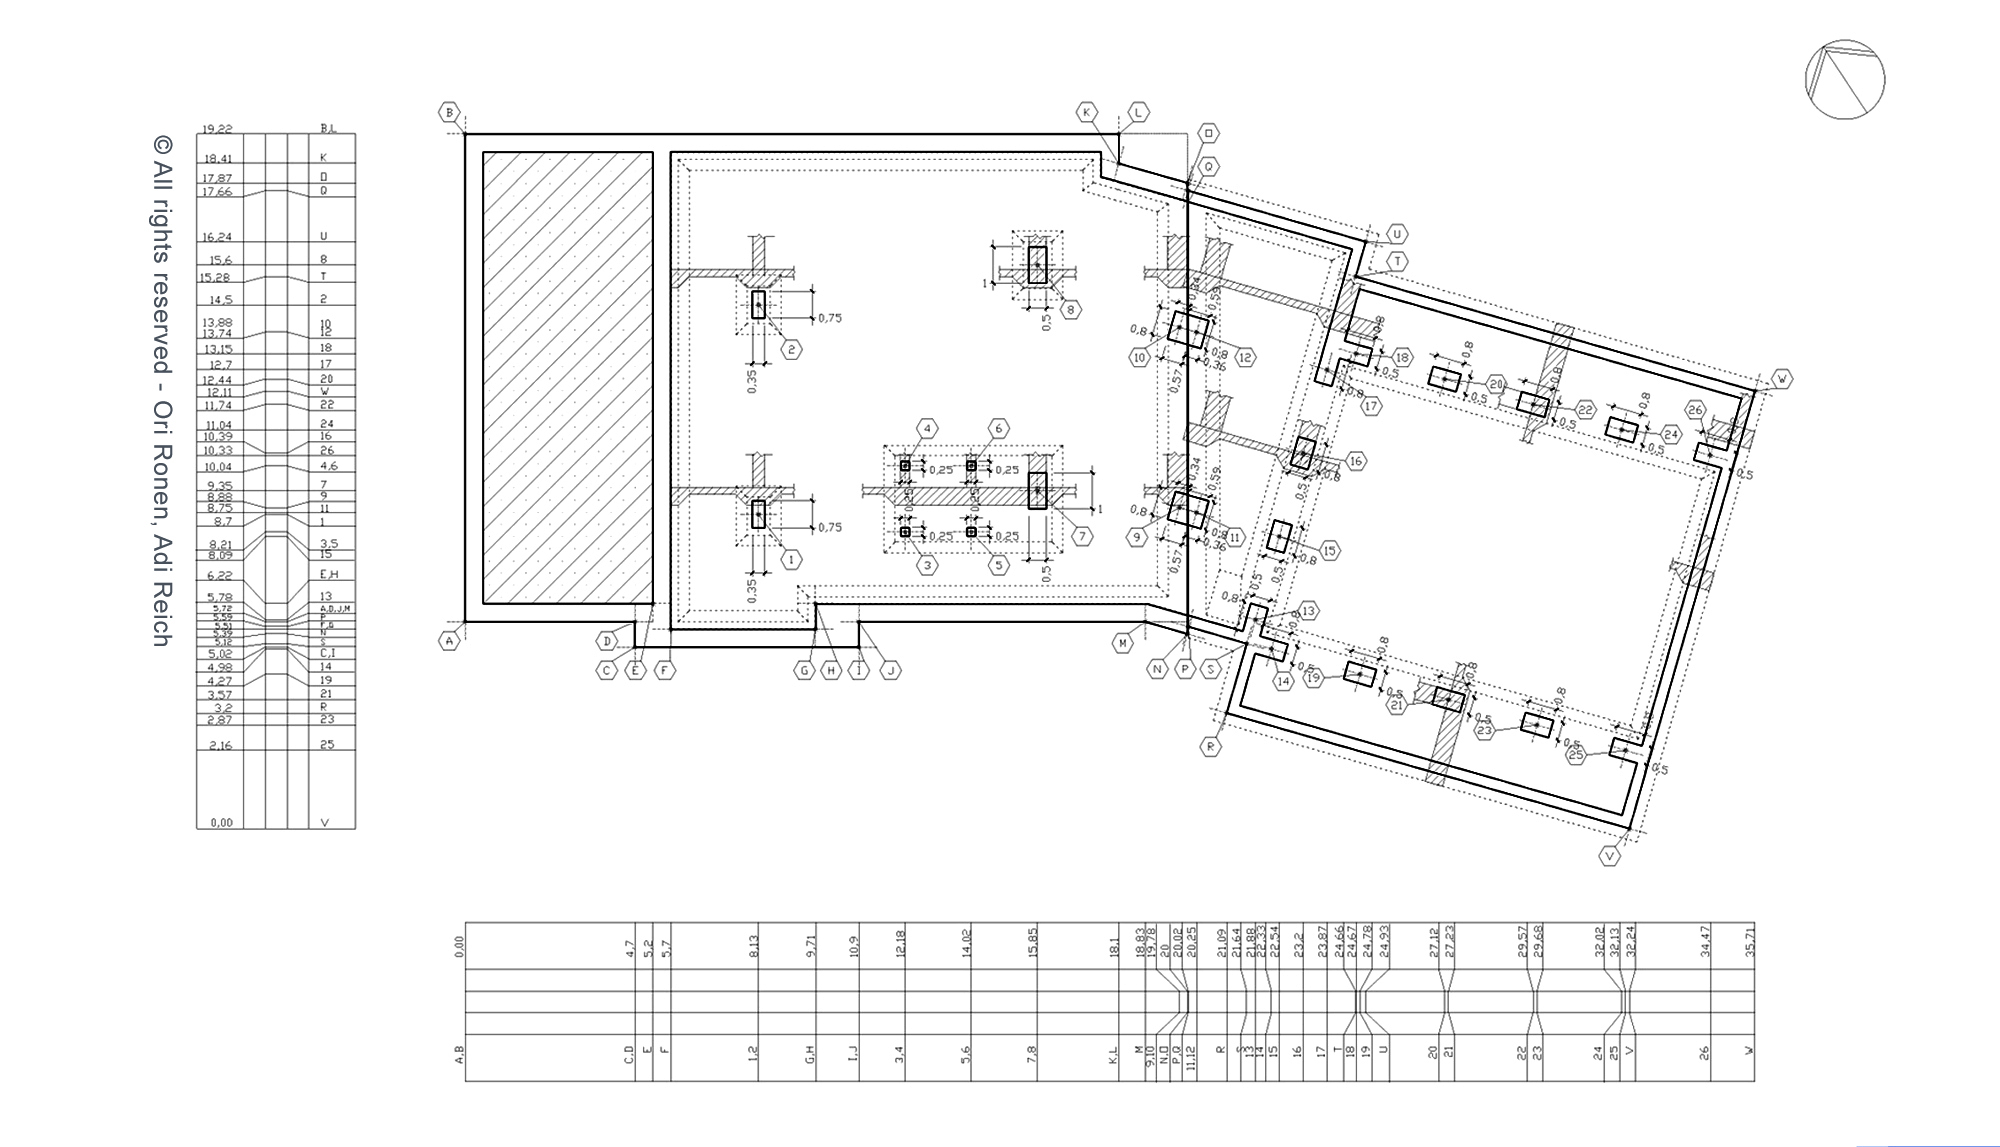 Adorable 25 slab house plans inspiration design of eplans for Slab house plans